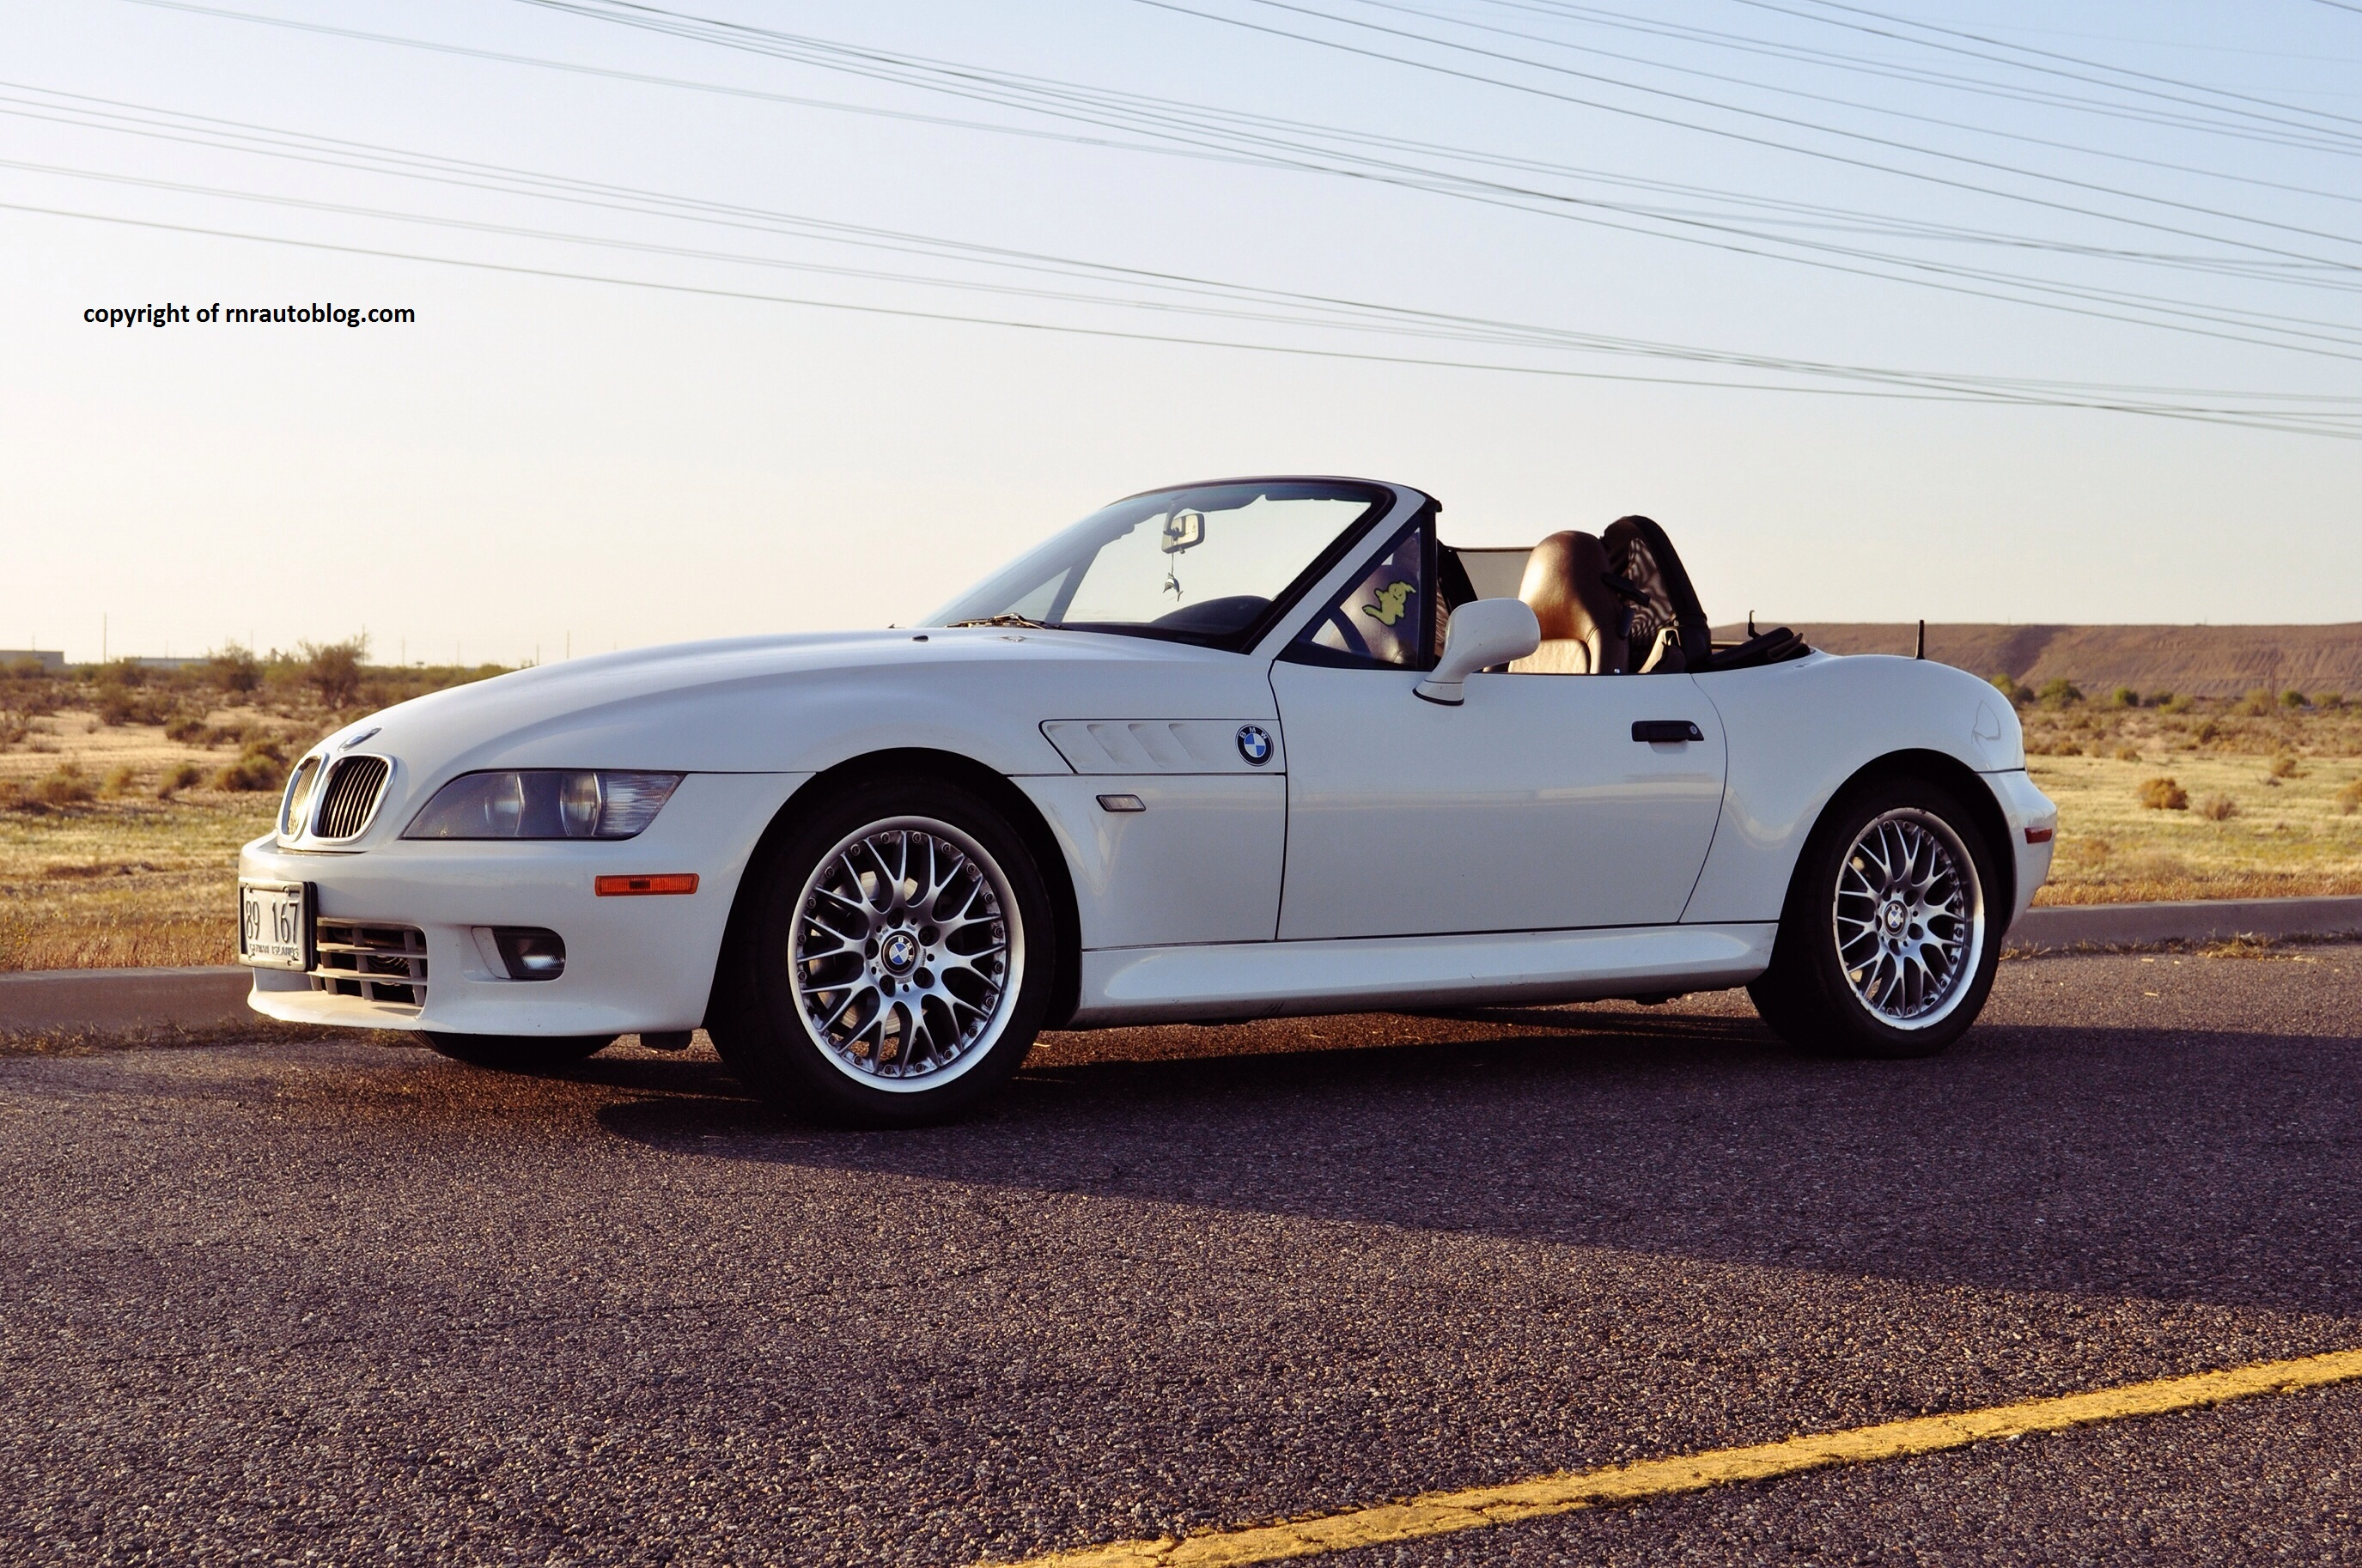 2000 bmw z3 review rnr automotive blog. Black Bedroom Furniture Sets. Home Design Ideas